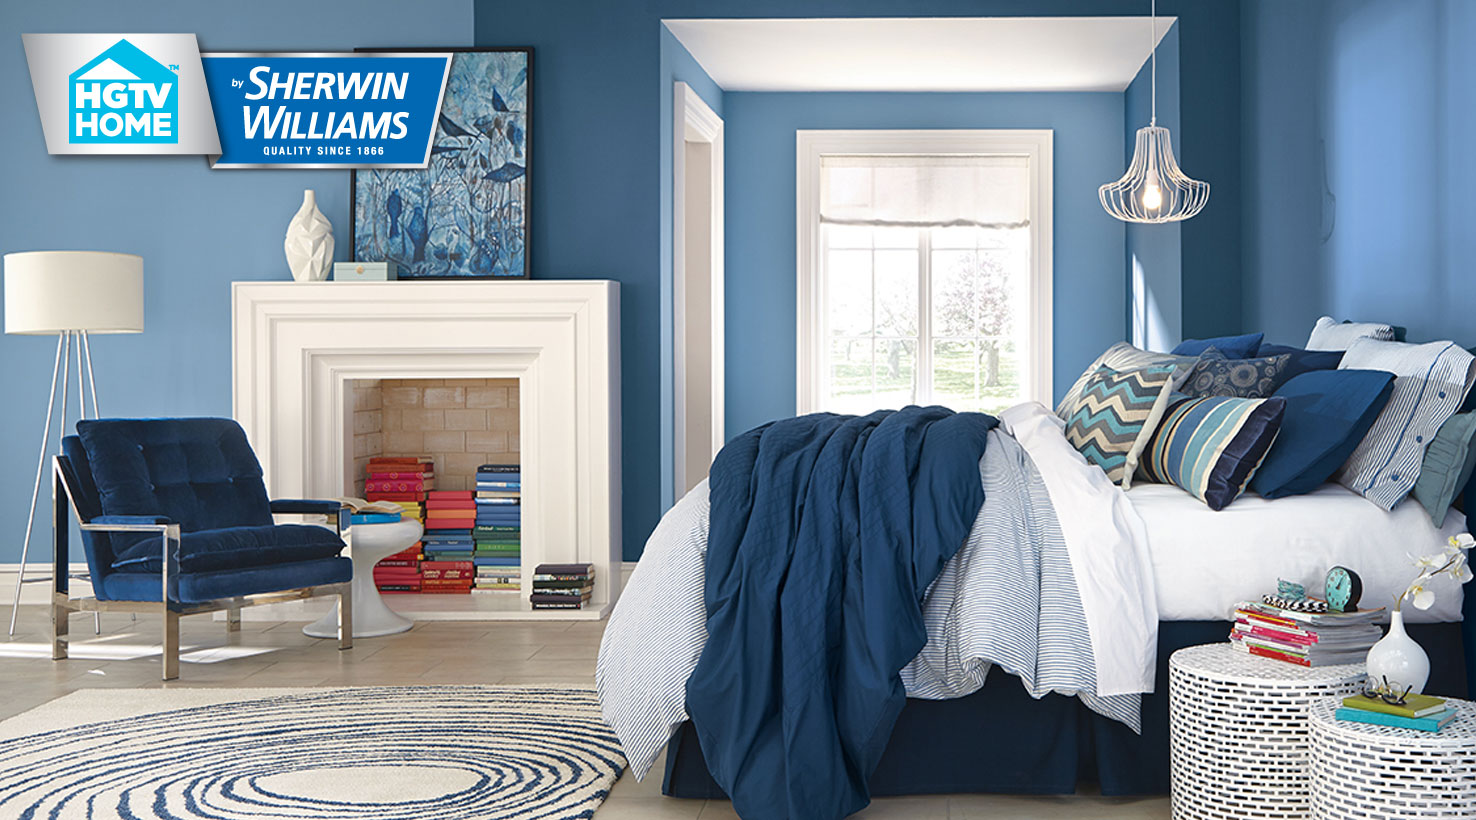 Color pizzazz paint color collection hgtv home by for Blue jean paint color